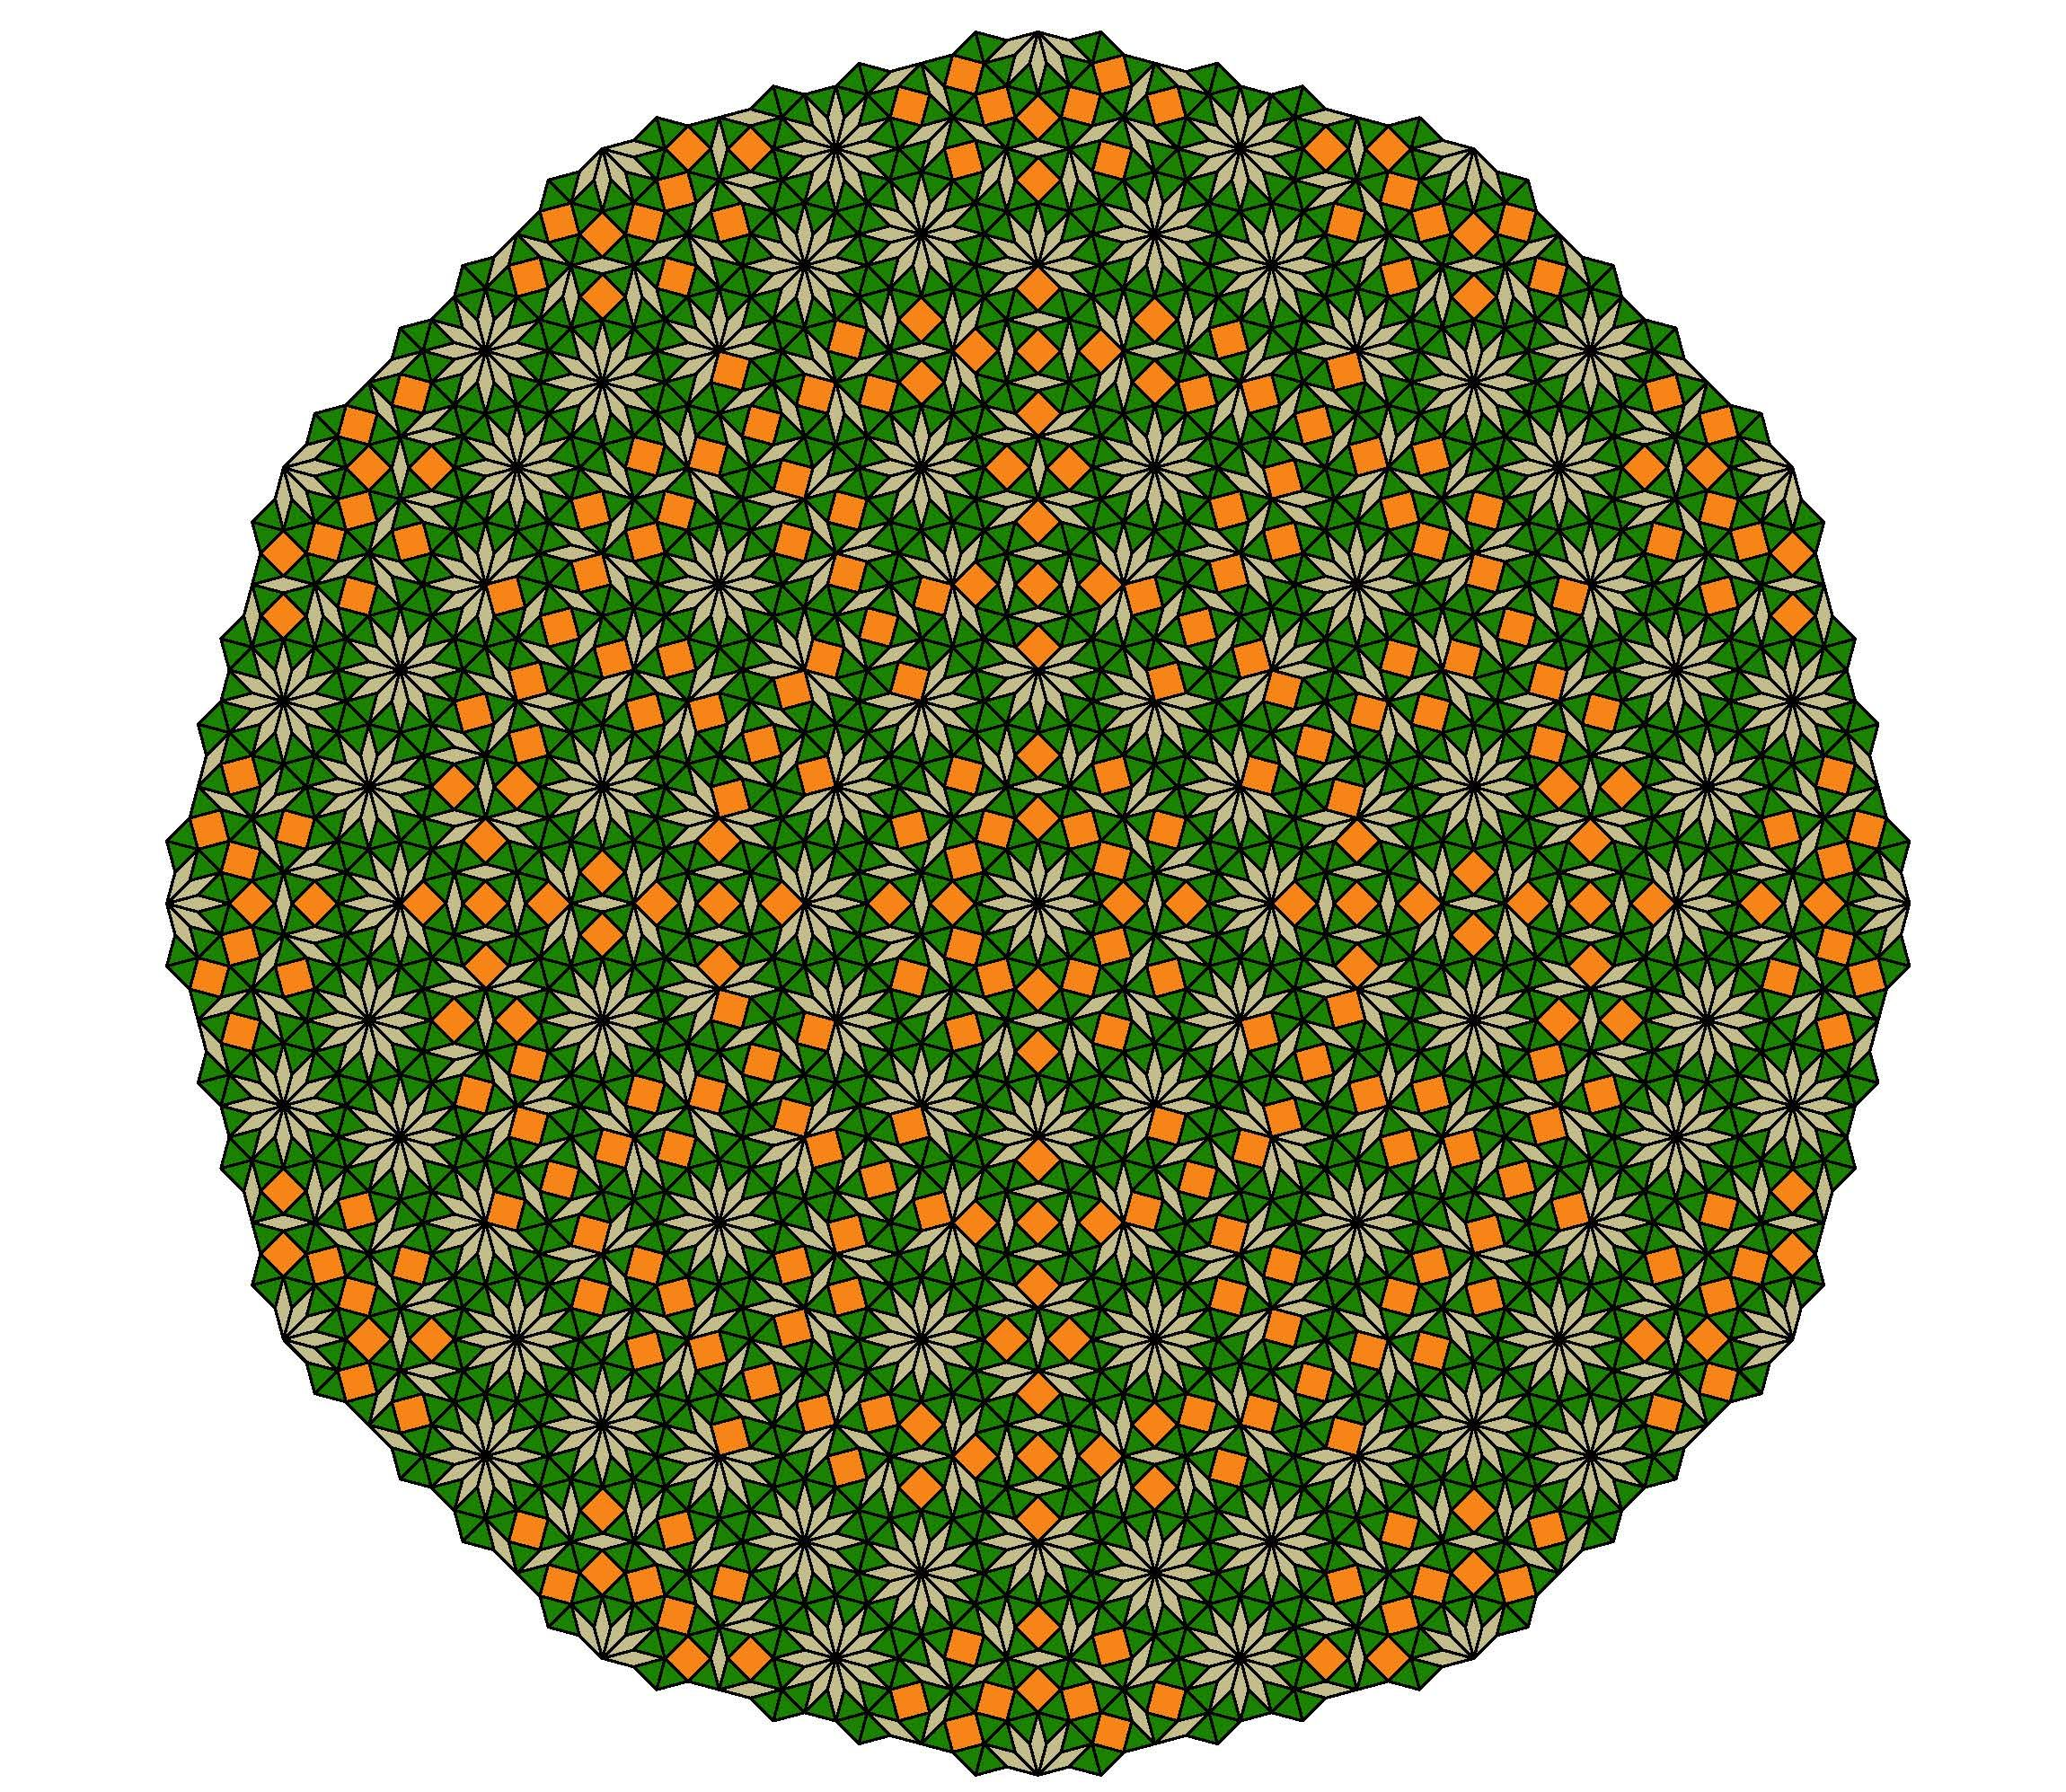 Mandala from the fourth simple nonperiodic tiling using pattern mandala from the fourth simple nonperiodic tiling using pattern blocks inflation level 2 dailygadgetfo Images